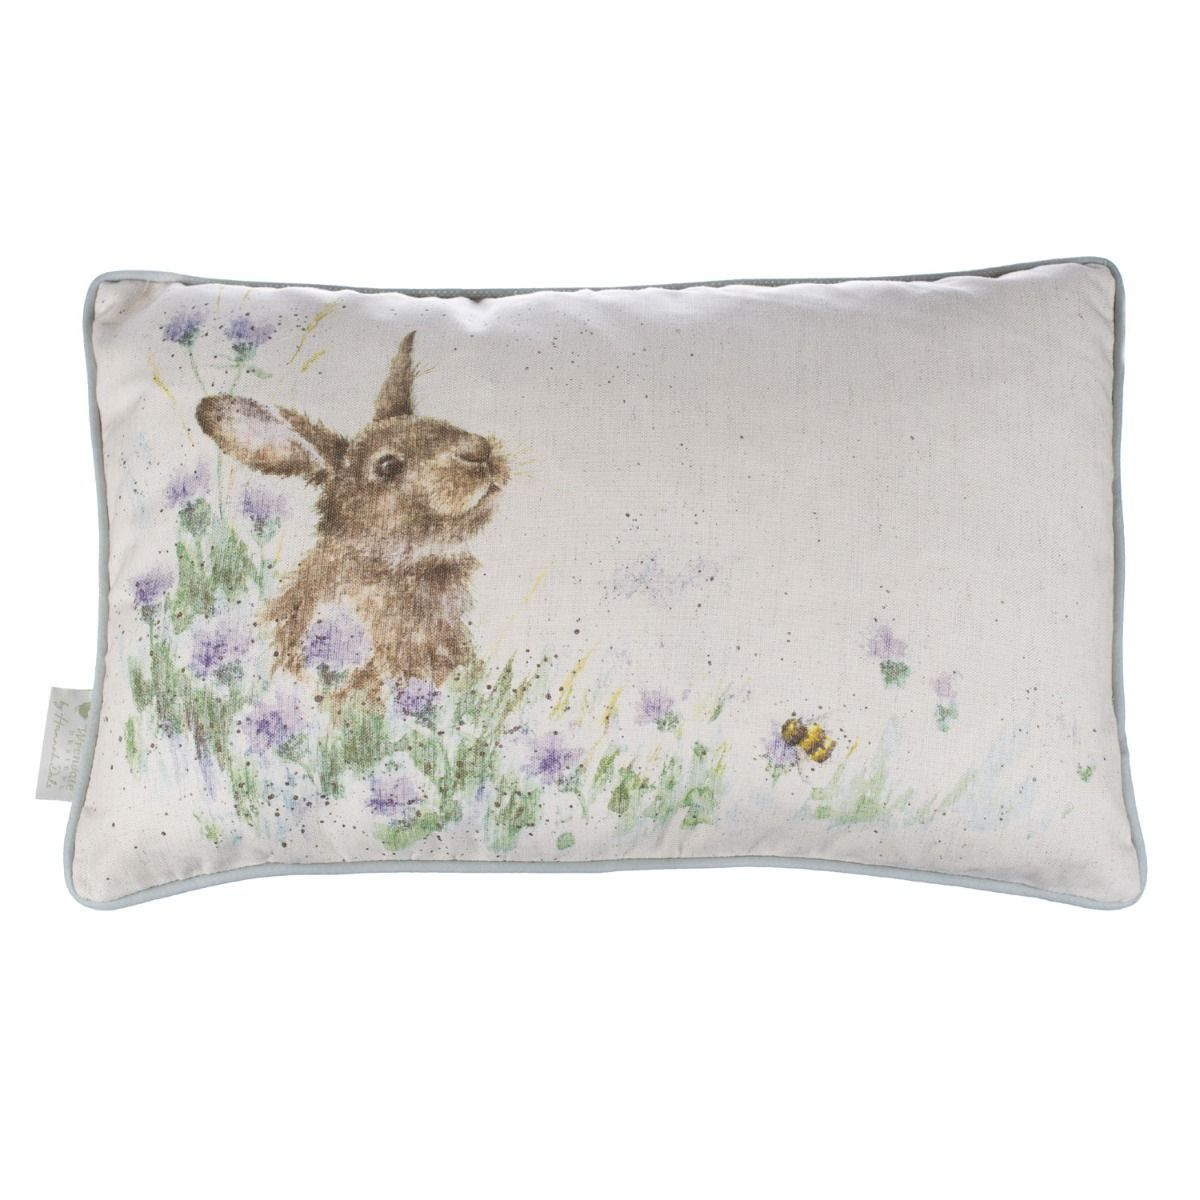 Country Cushion Meadow Rabbit featuring a beautiful illustration.